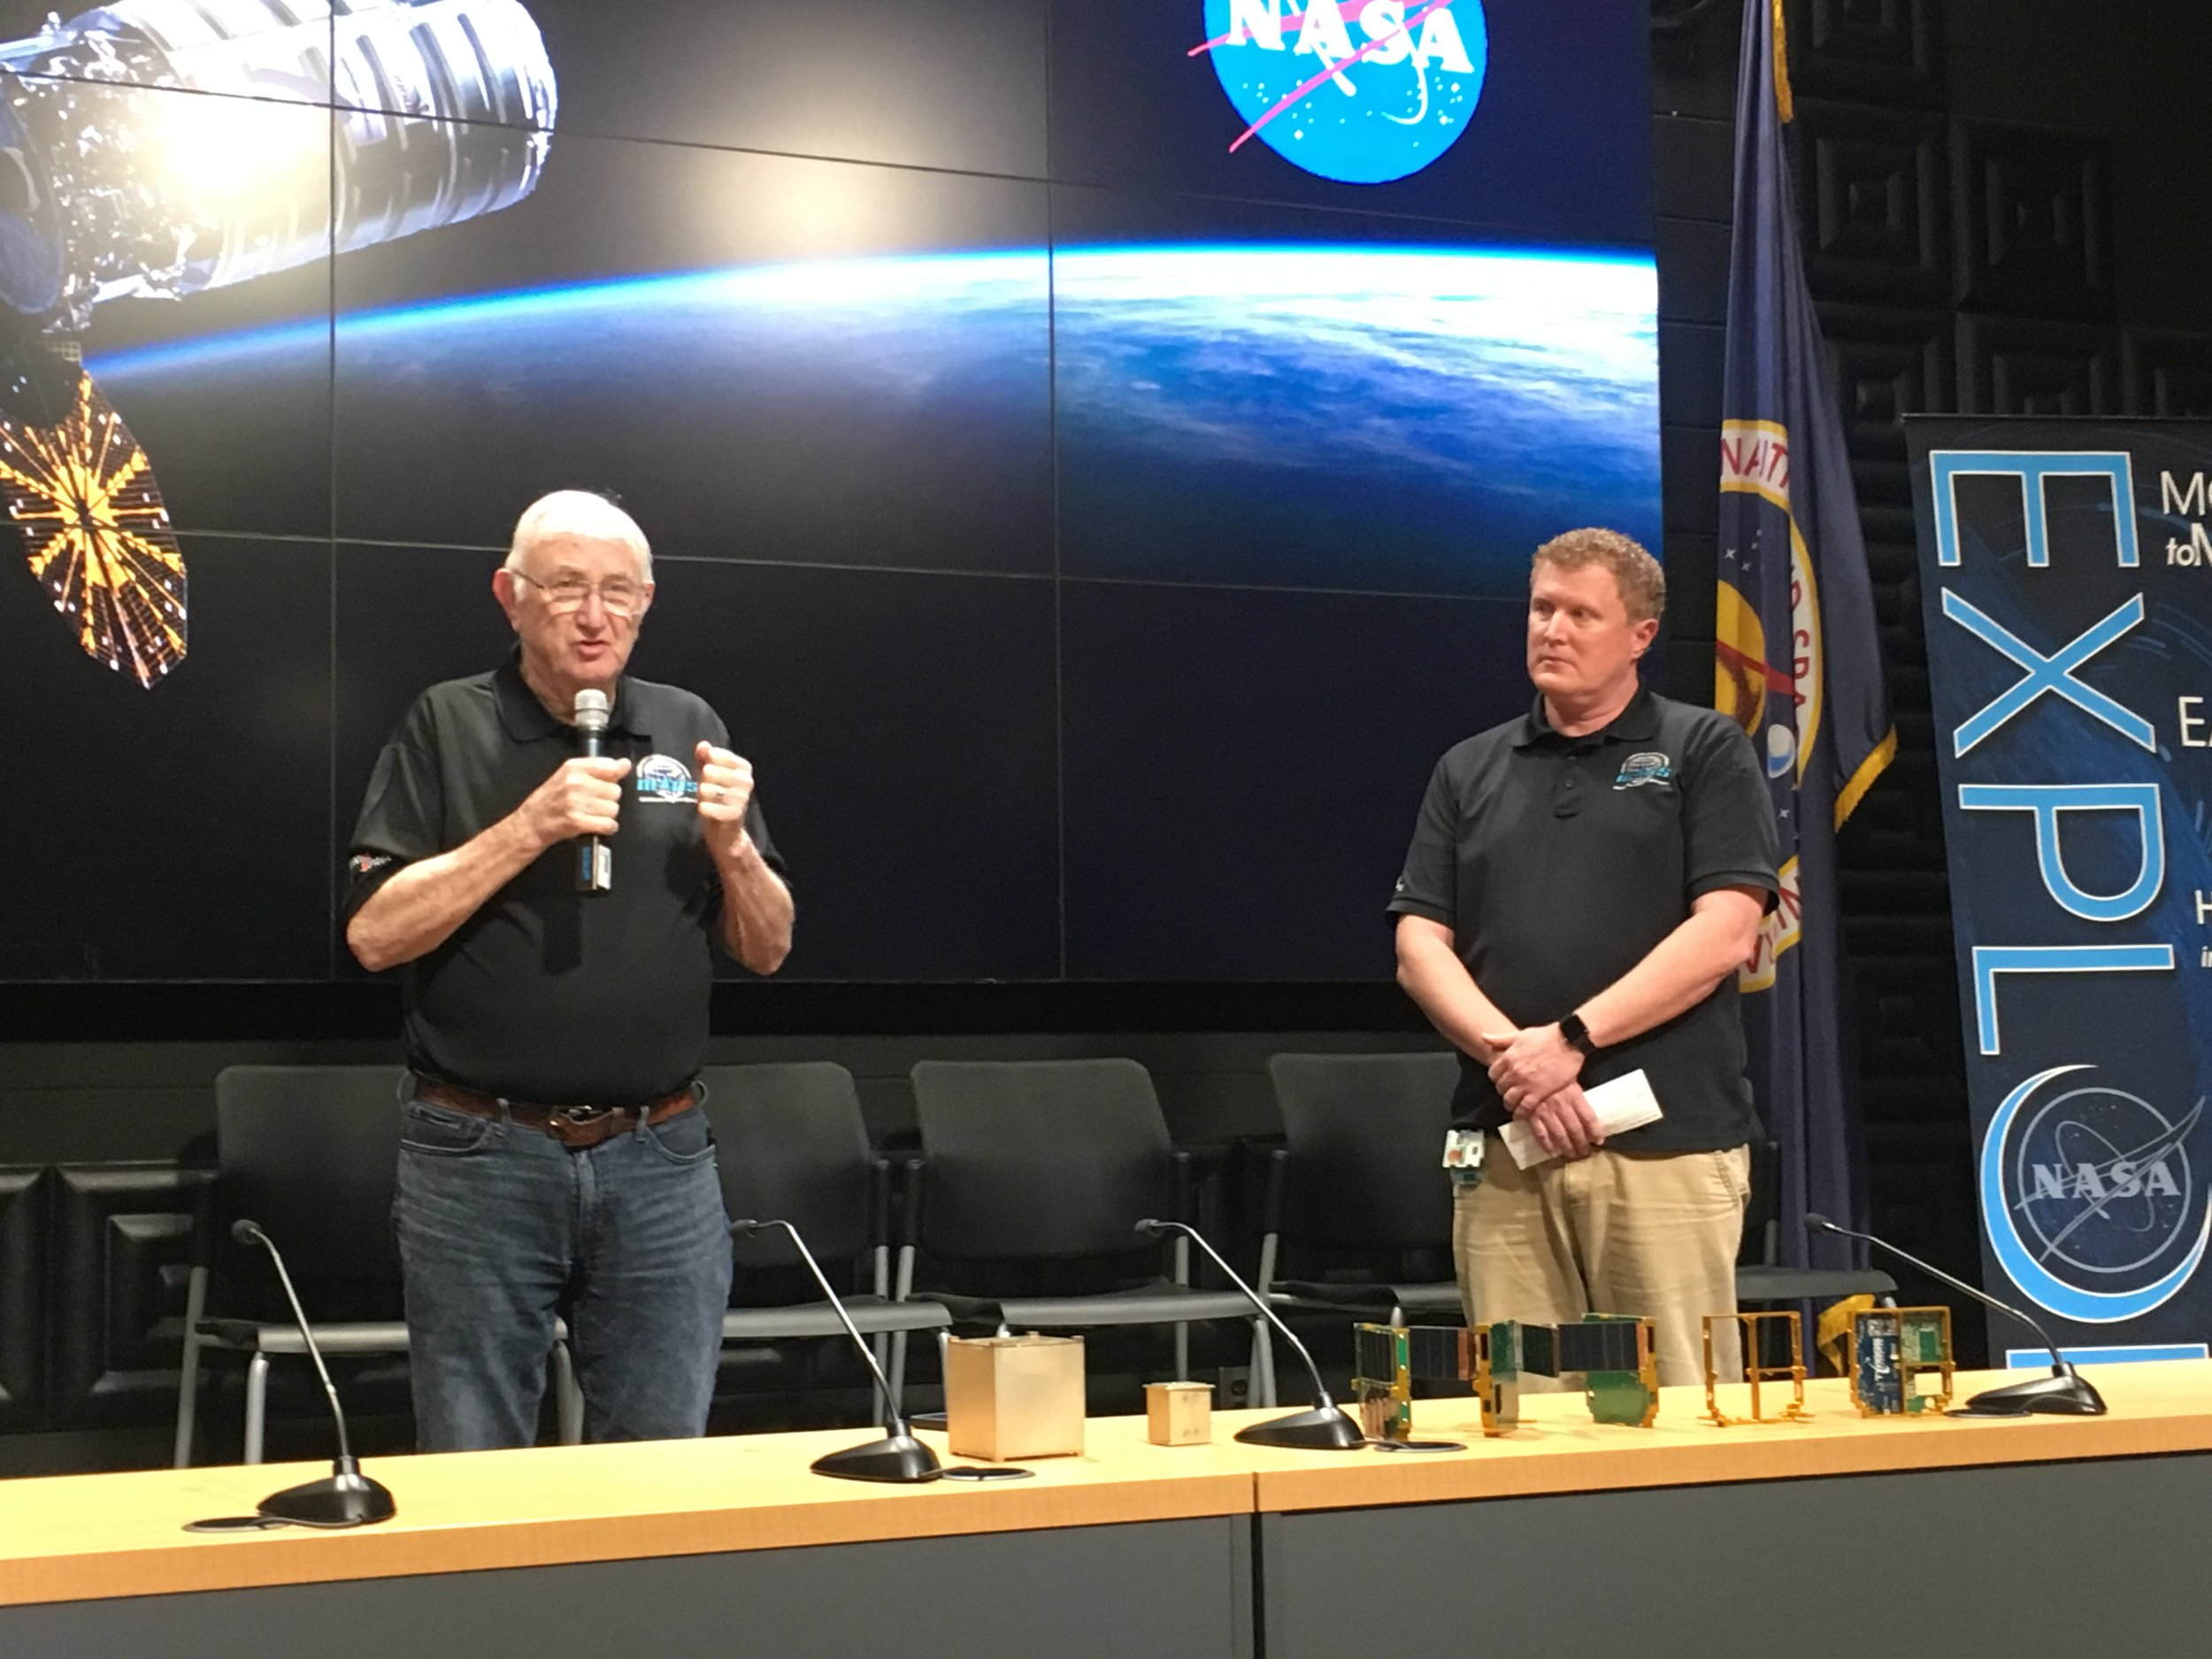 Bob Twiggs, ThinSat, Twiggs Space Lab, Morehead State University; and Chris Hale, ThinSat, Virginia Space.